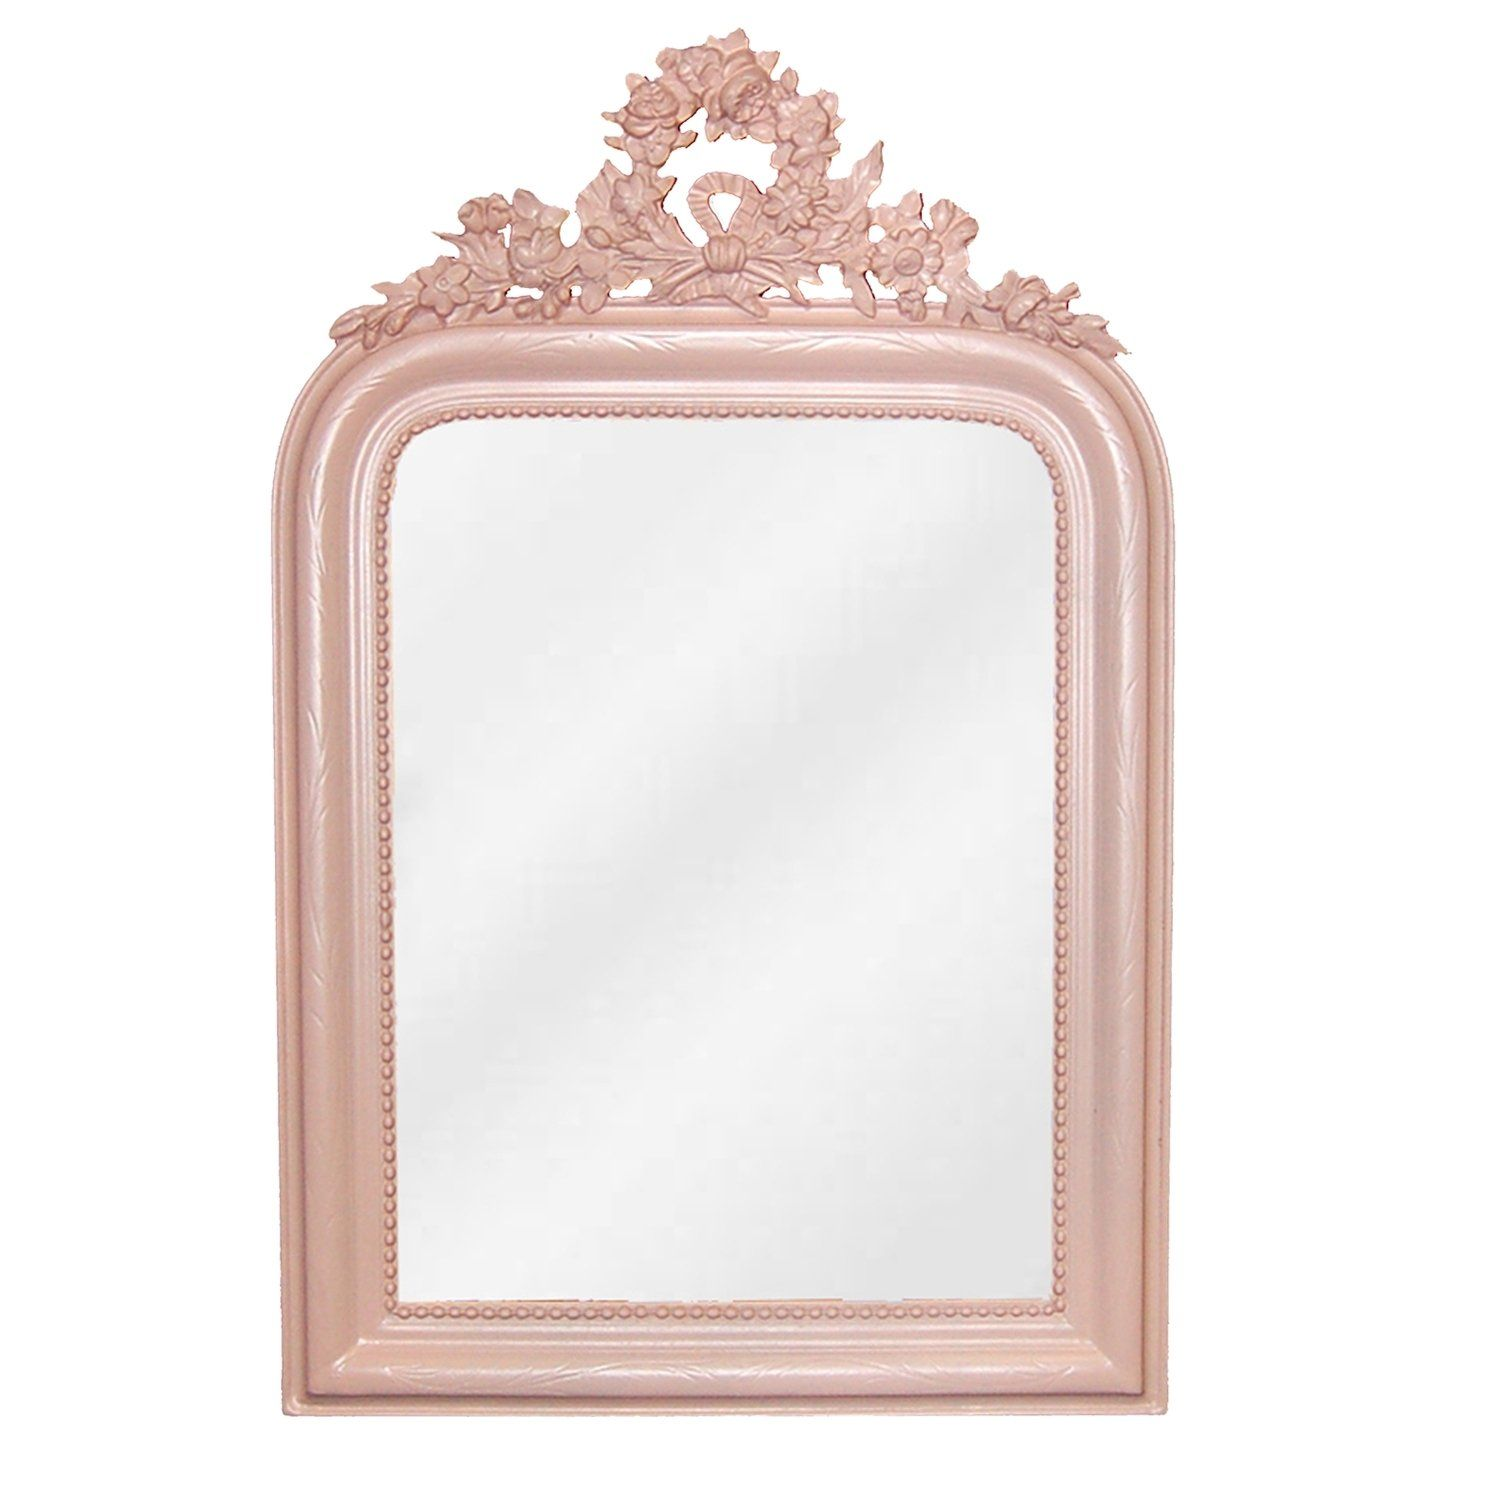 Inspired by 19th-century style, meticulous details and a regal floral wreath top make the wreath mirror shine with sophistication. In a classic rounded-top rectangle shape, the wreath mirror features subtle swirled carvings along the entire frame and a beaded accent along the inner trim. A royal addition to any space. 28